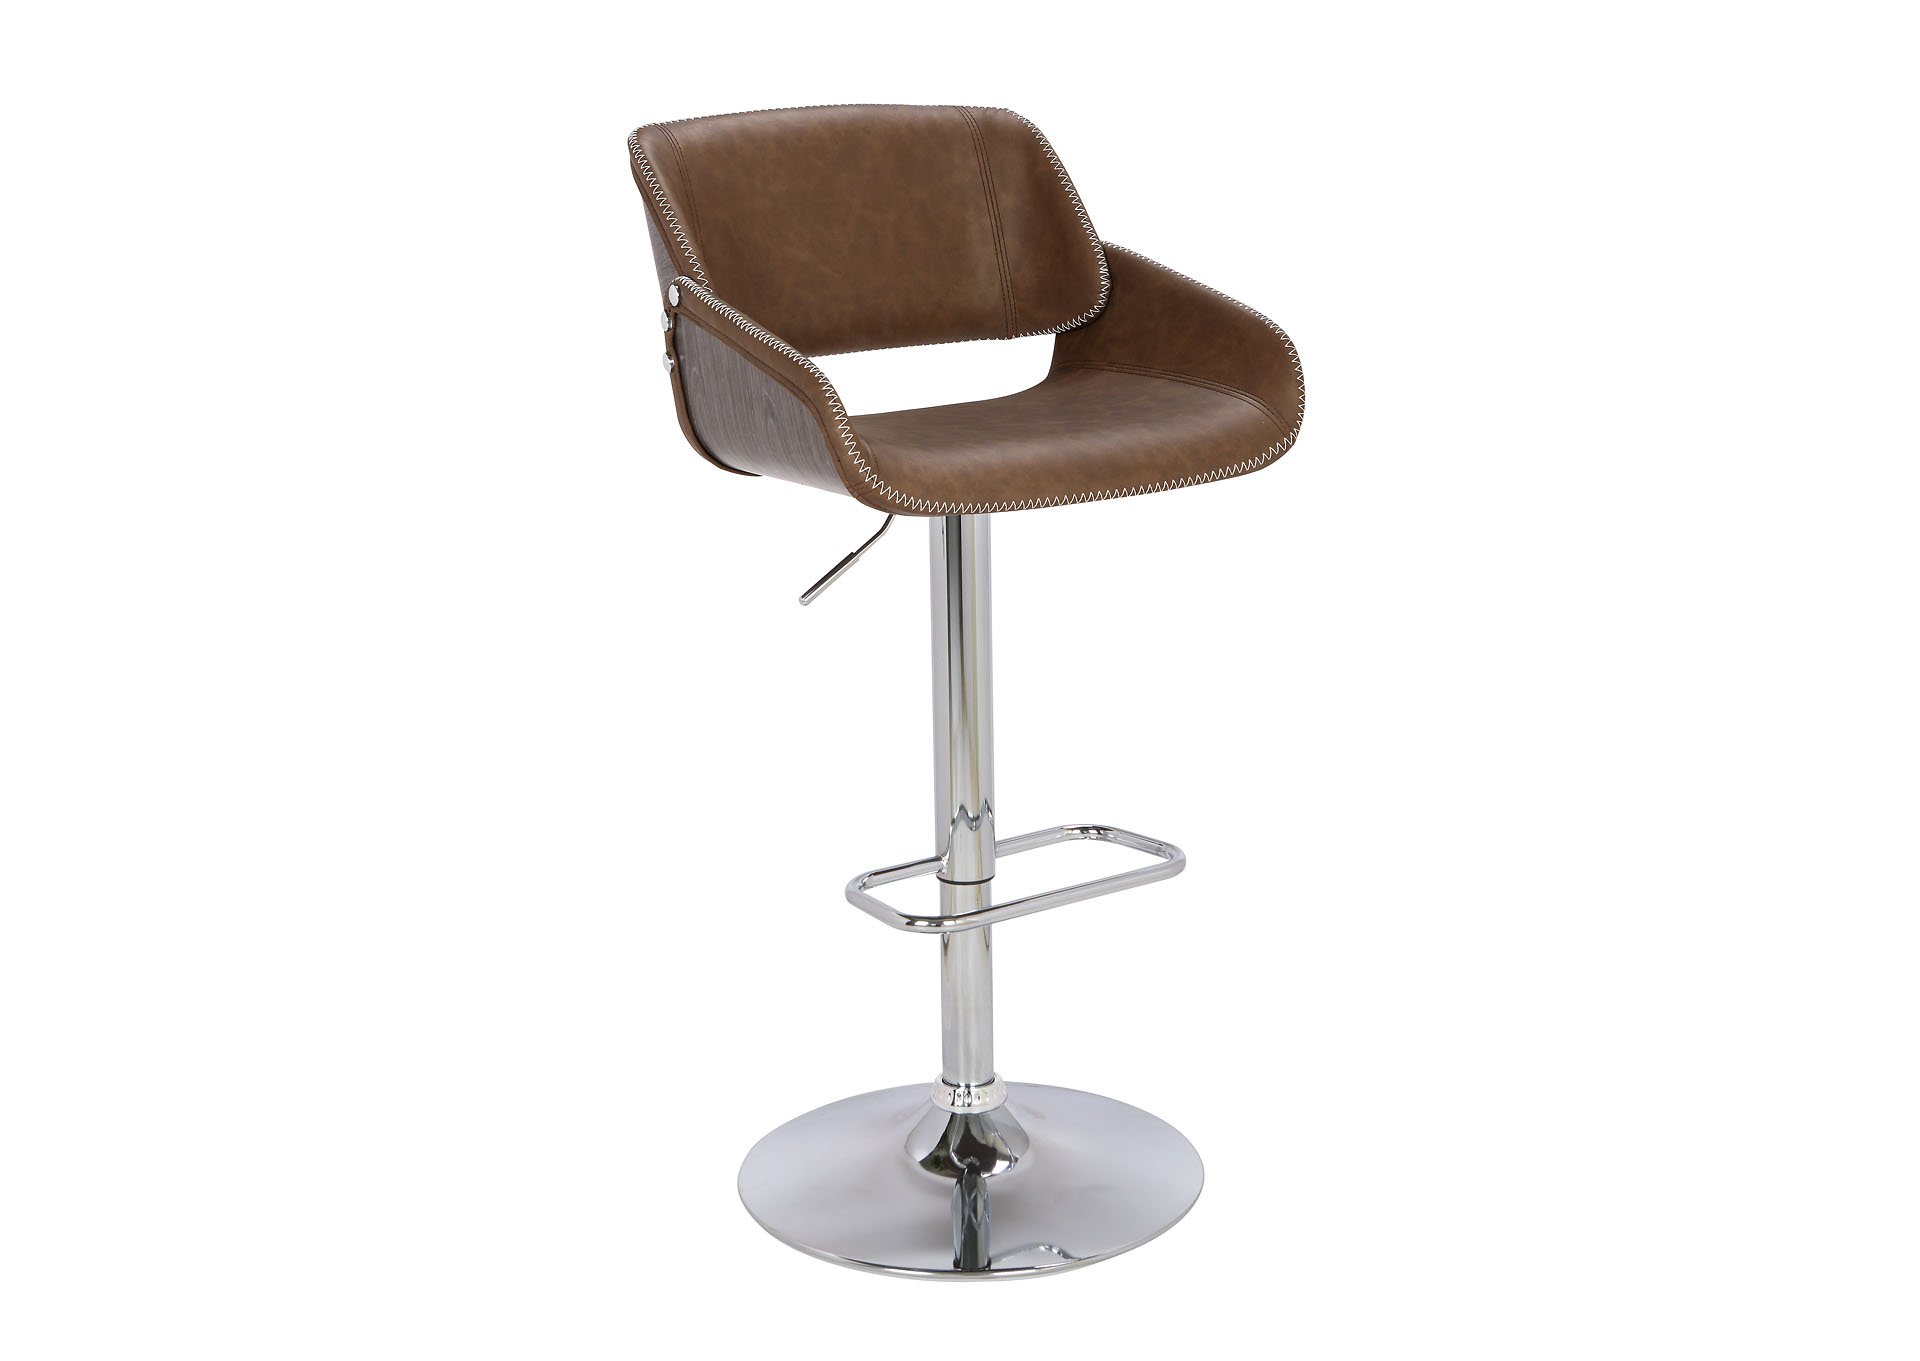 Chrome & Dark Oak Pneumatic Bentwood Saddle Seat Adjustable Stool w/ Stitching,Chintaly Imports